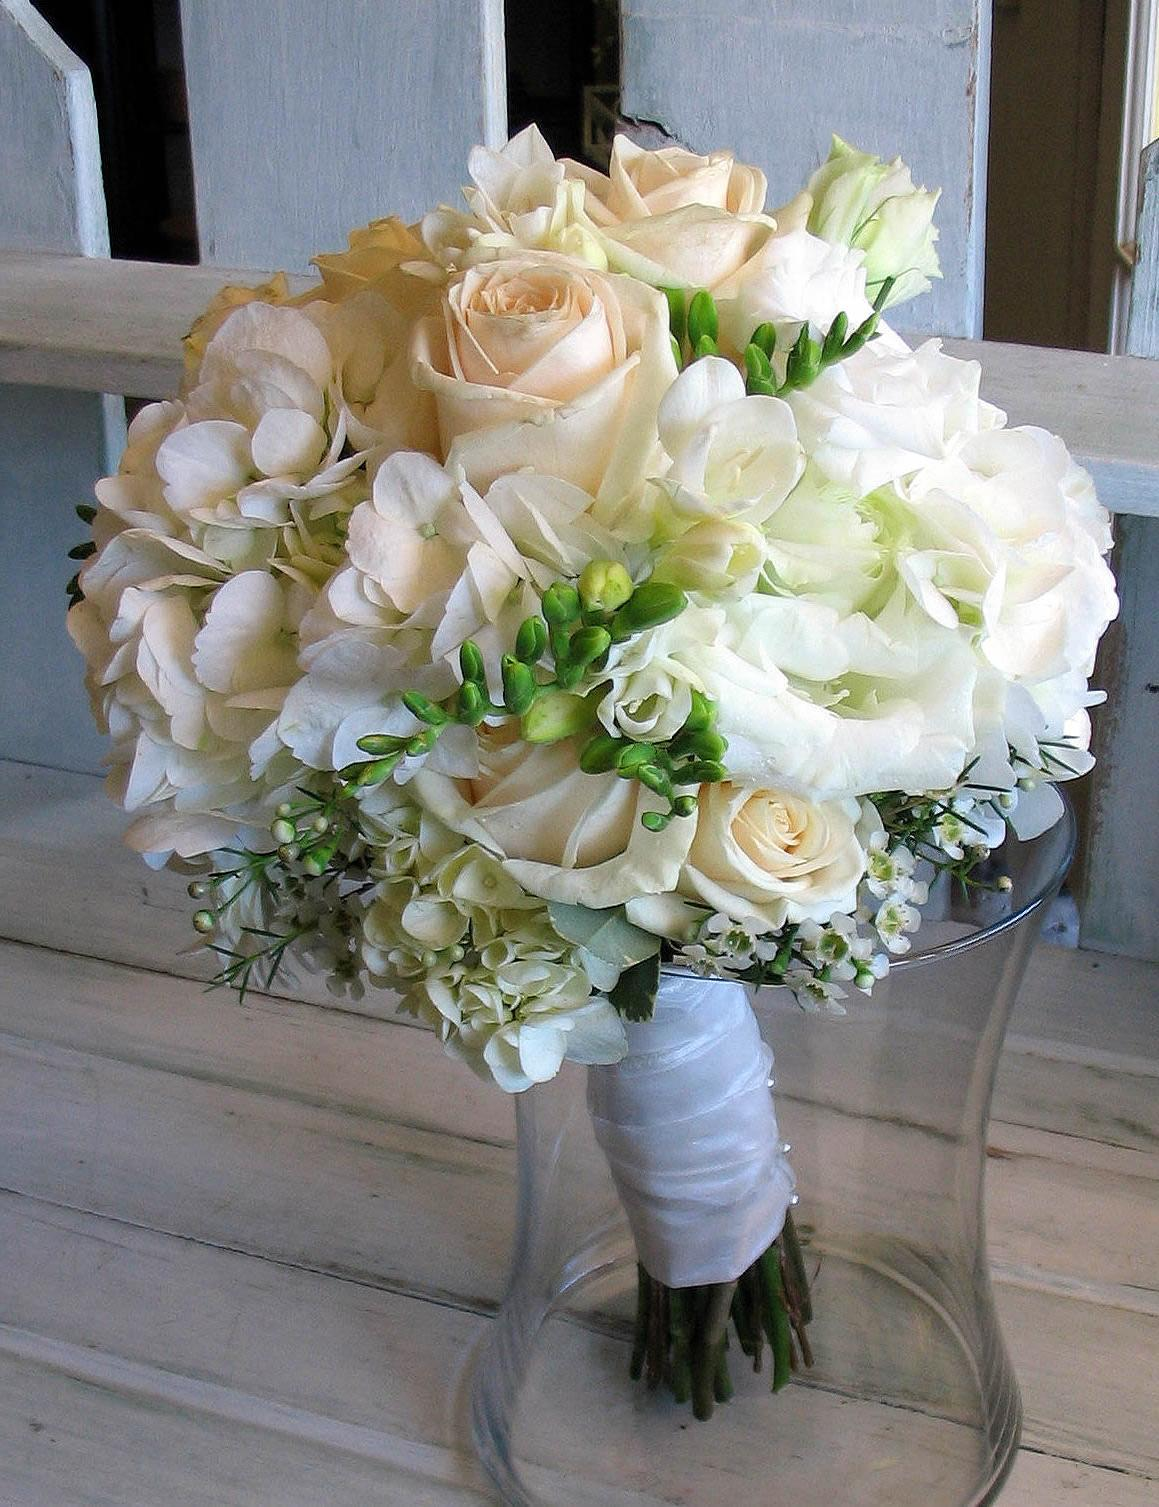 in a large formal bouquet,